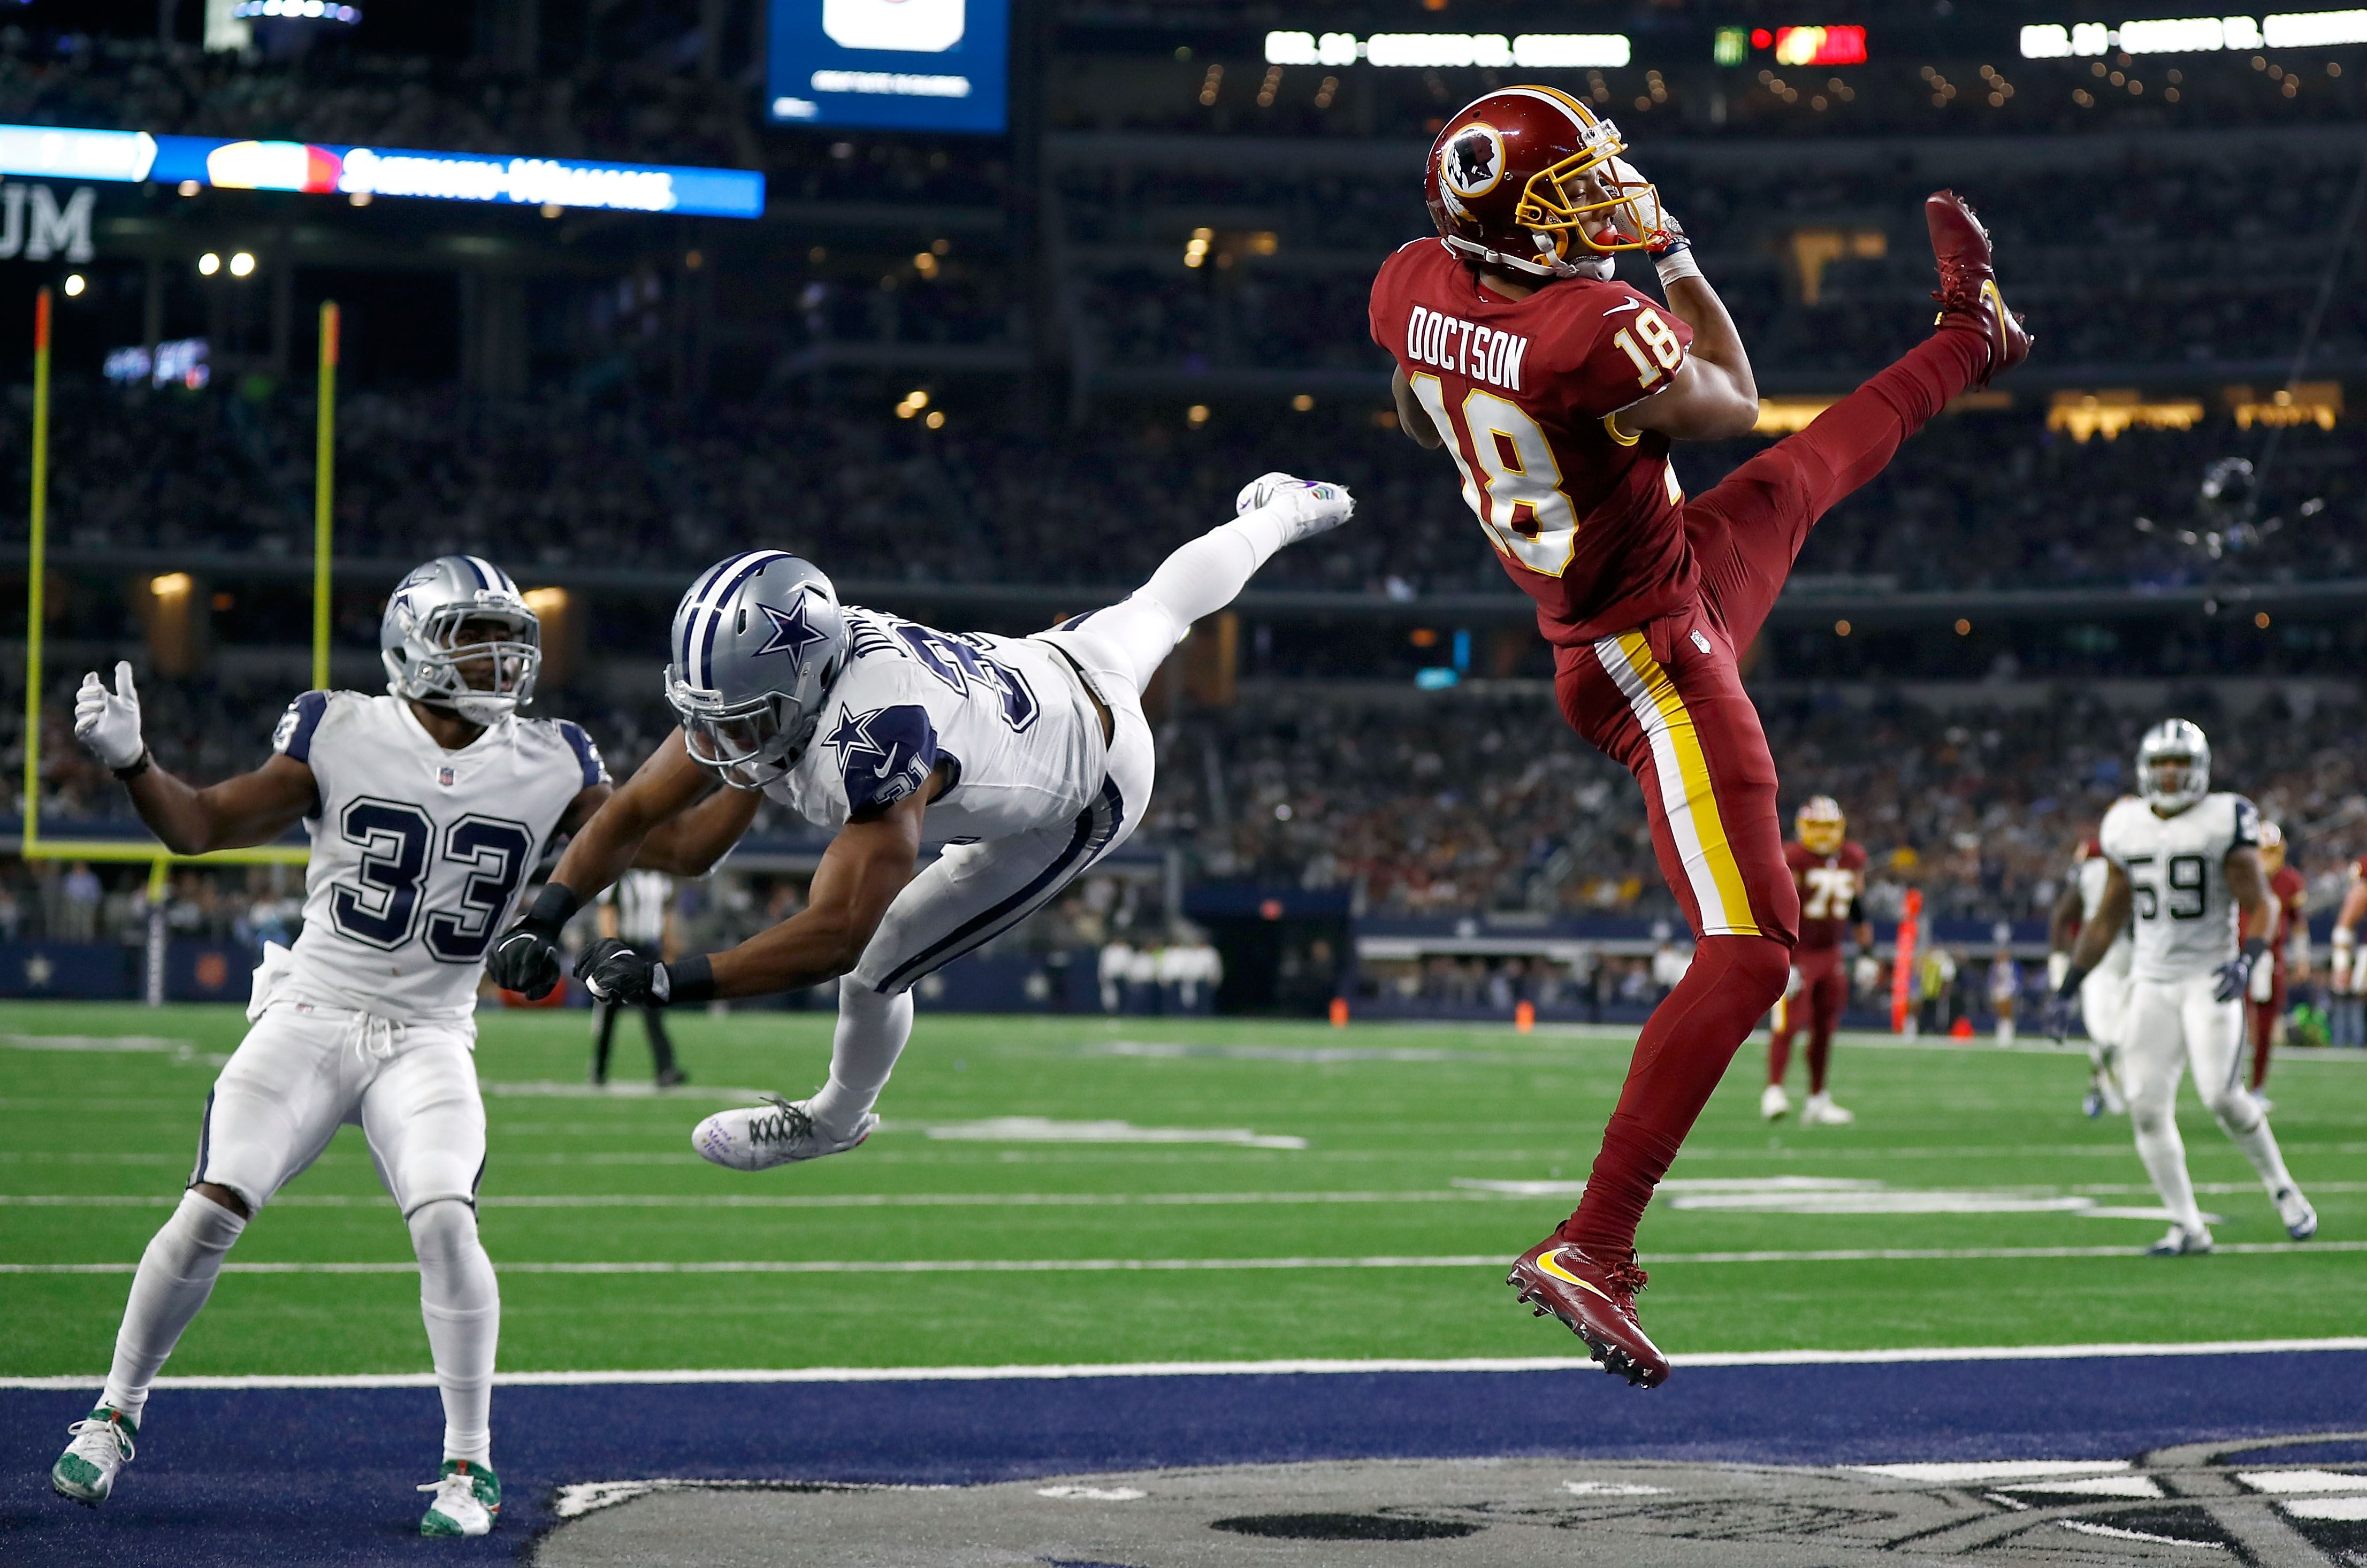 883393530-washington-redskins-v-dallas-cowboys.jpg